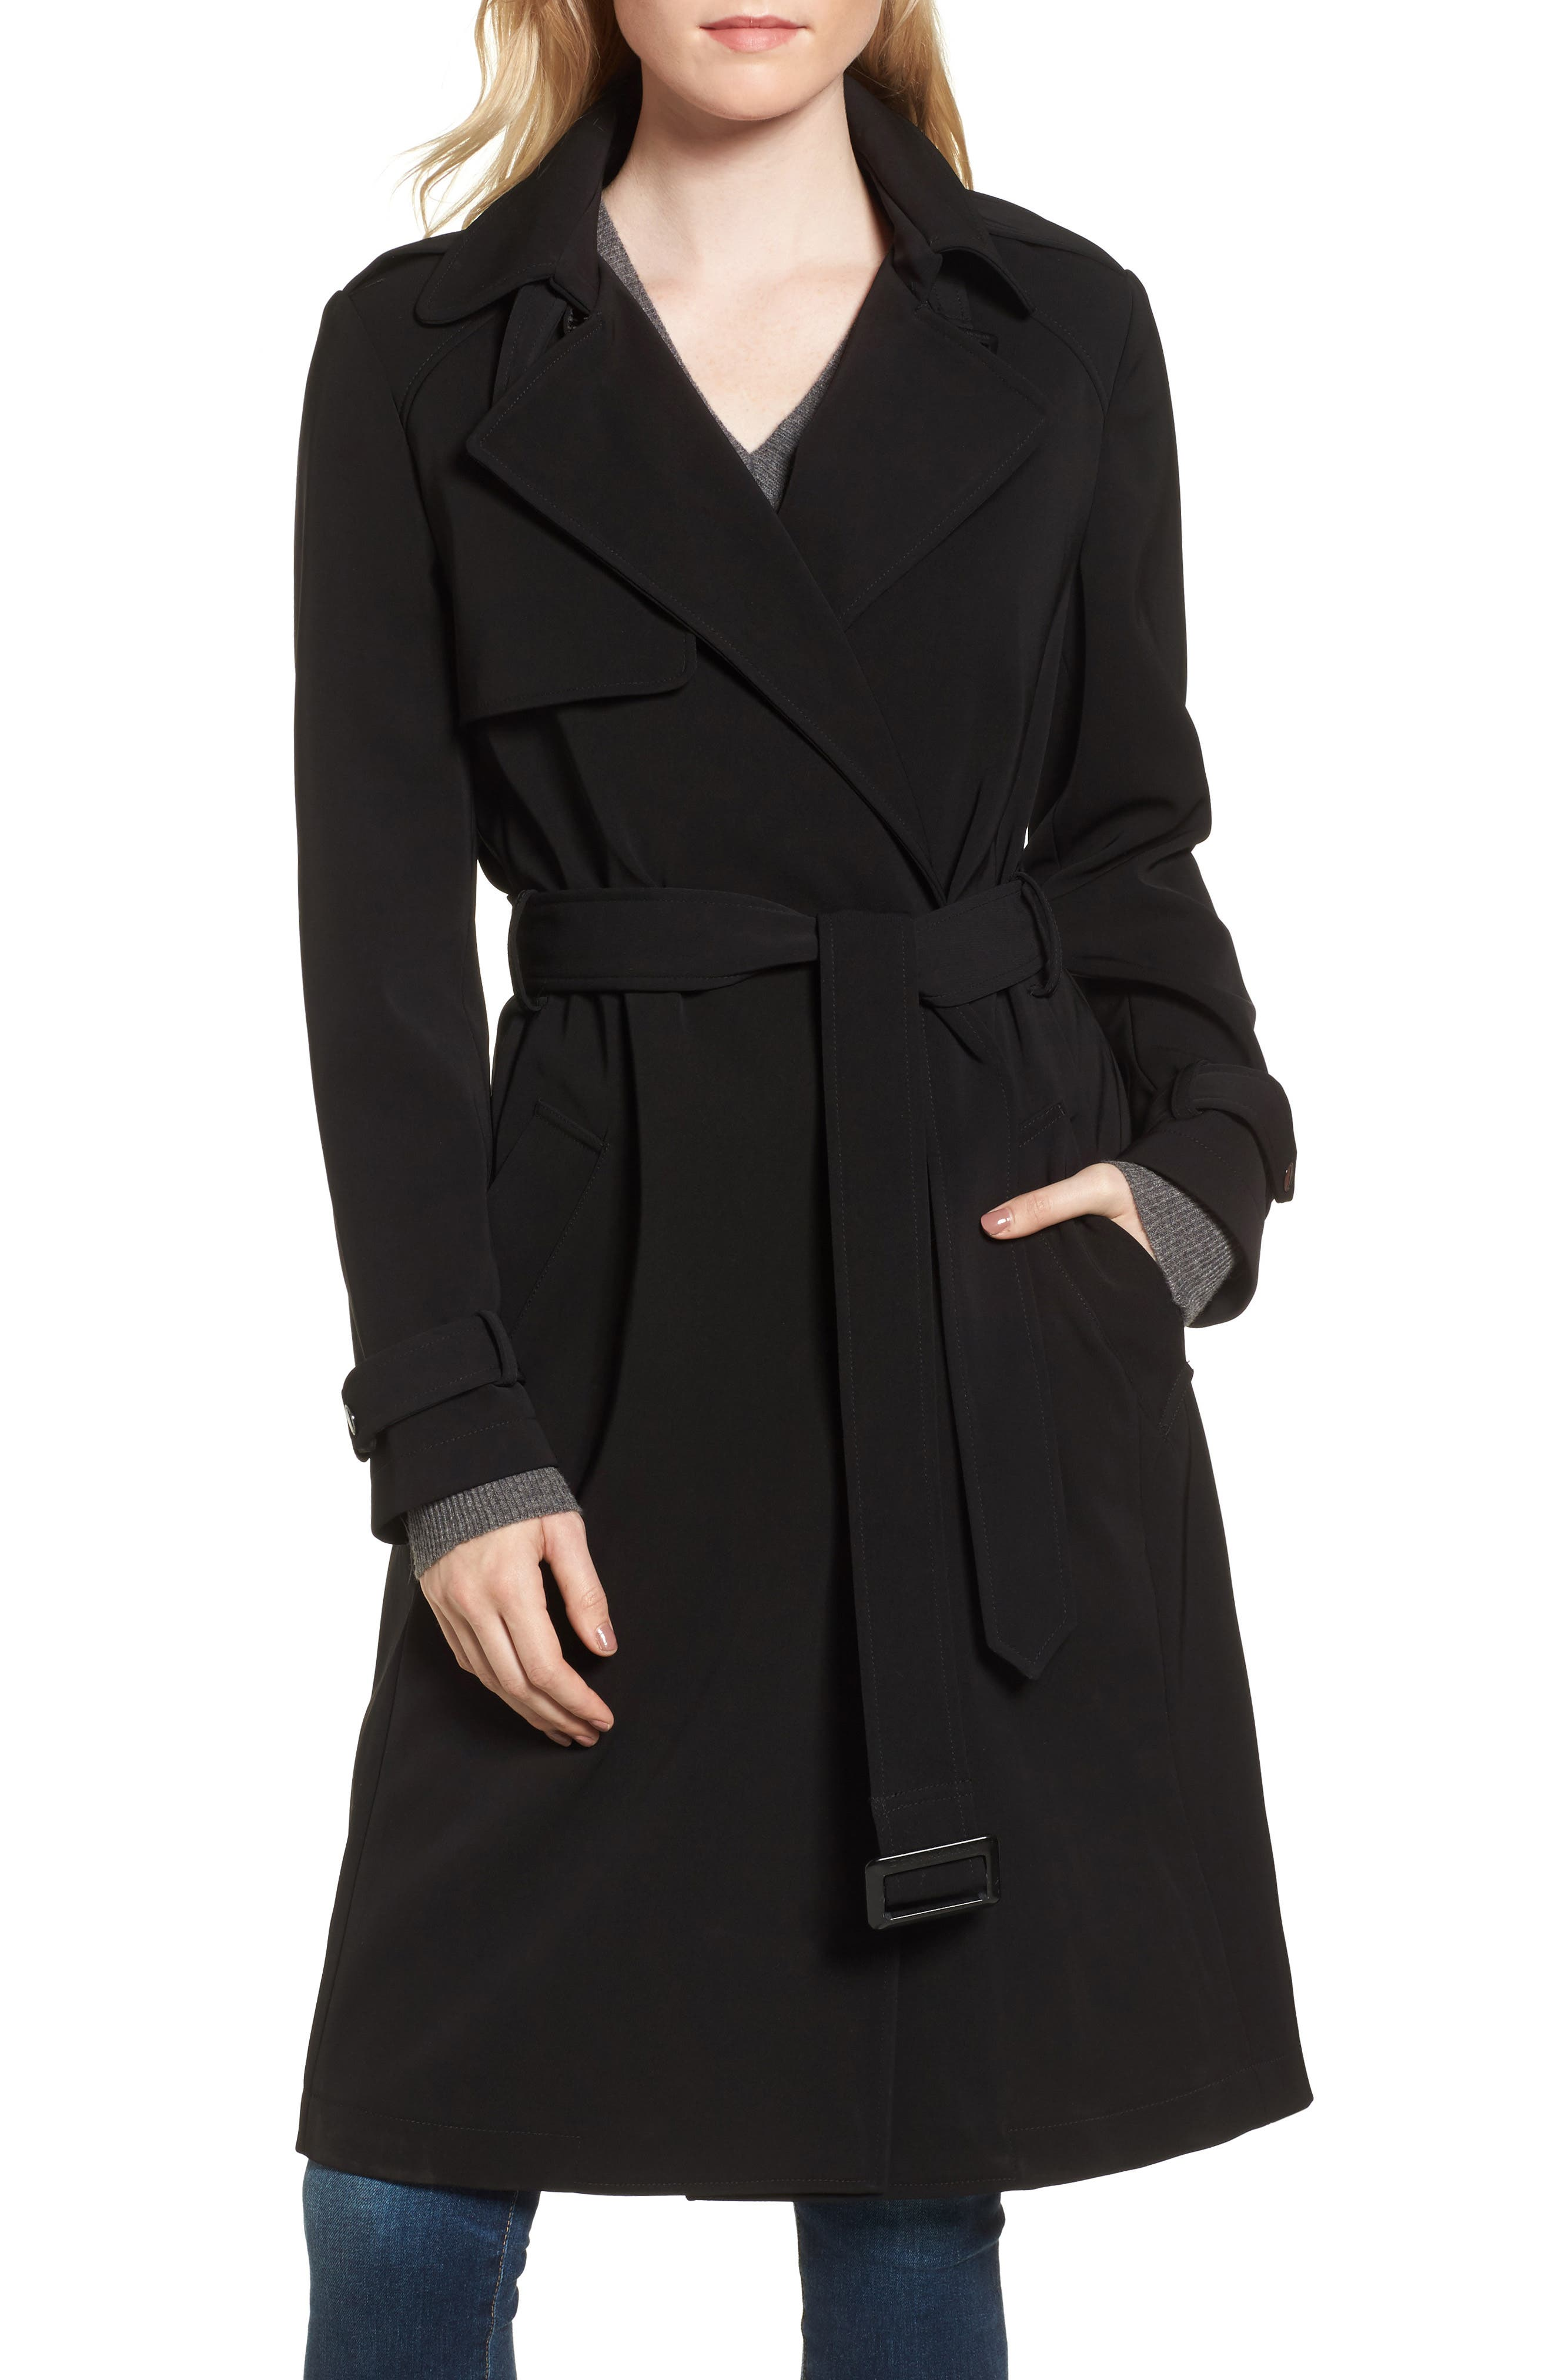 DKNY French Twill Water Resistant Trench Coat,                         Main,                         color, 001